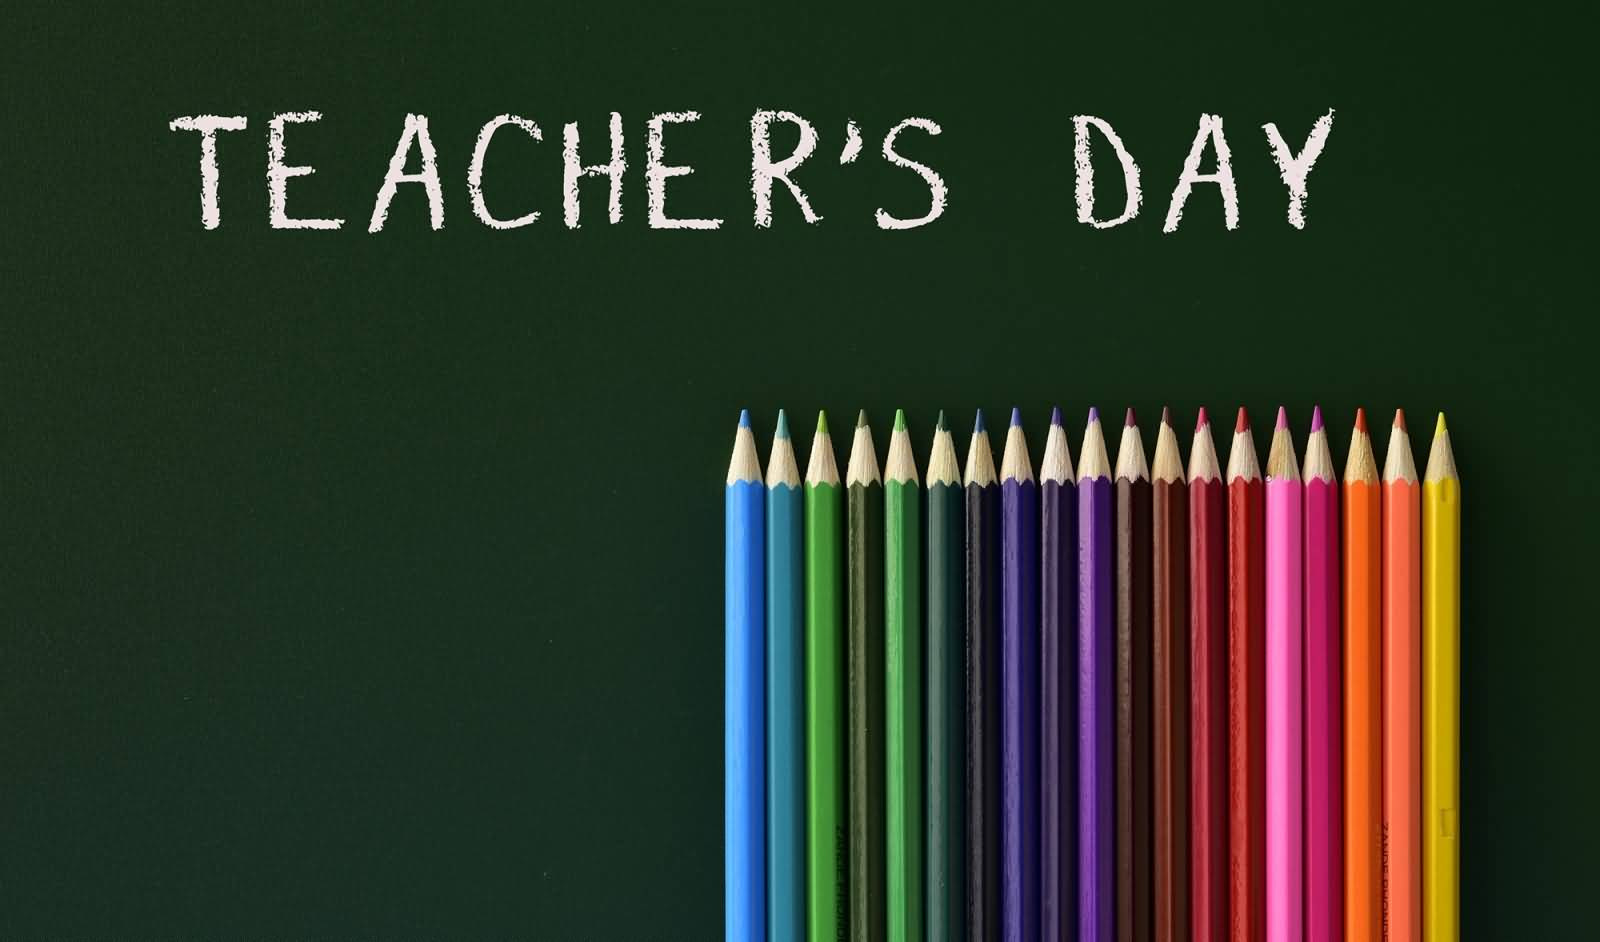 43-World Teachers Day Wishes